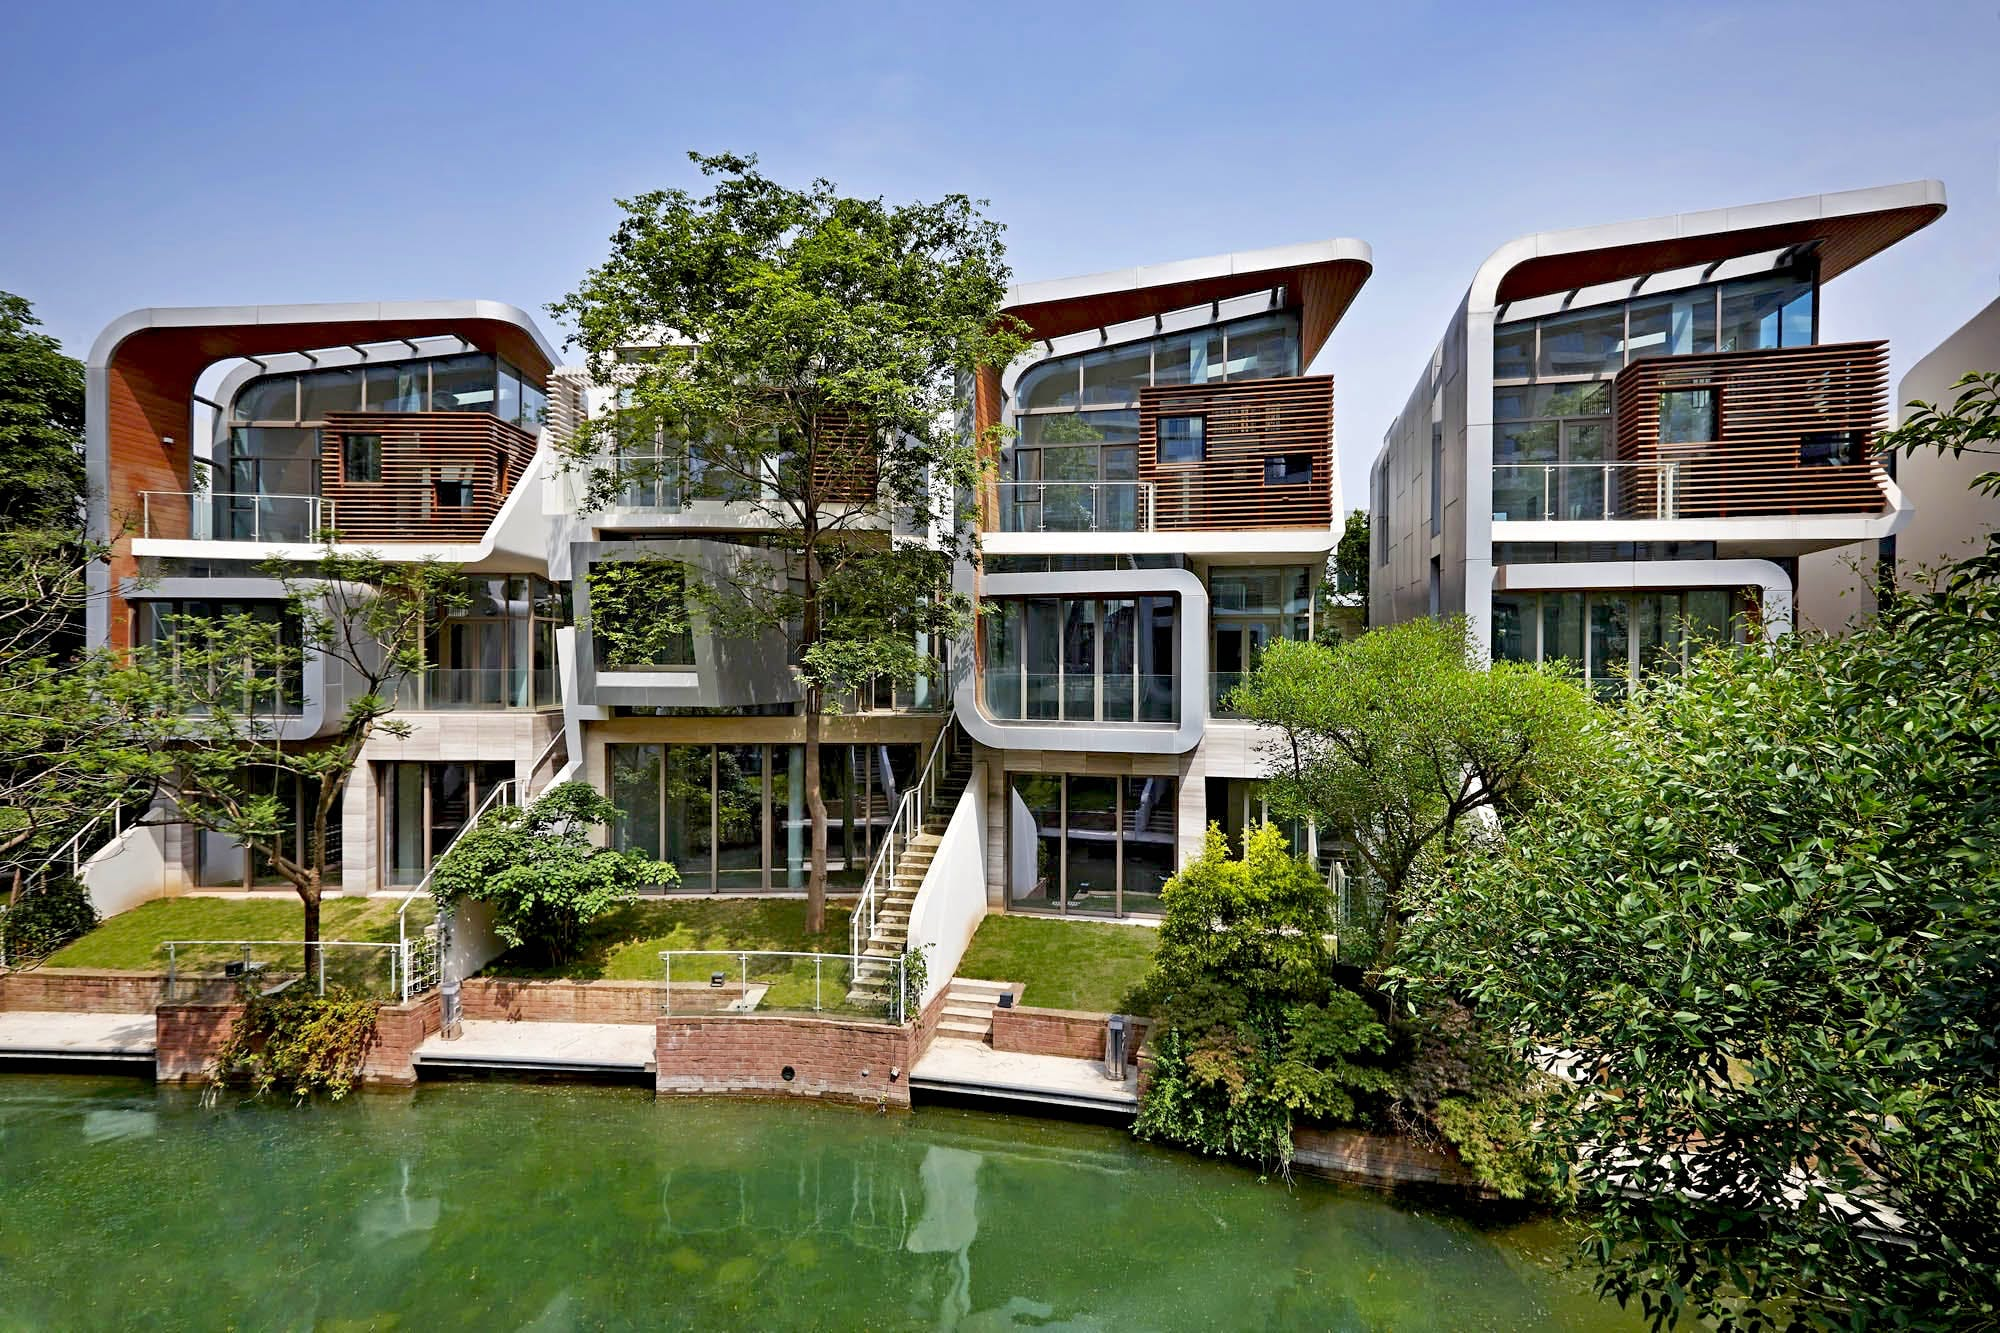 Amazing Peace Creek Villas By JFAK, Located In Chengdu, CN. Image: JFAK.